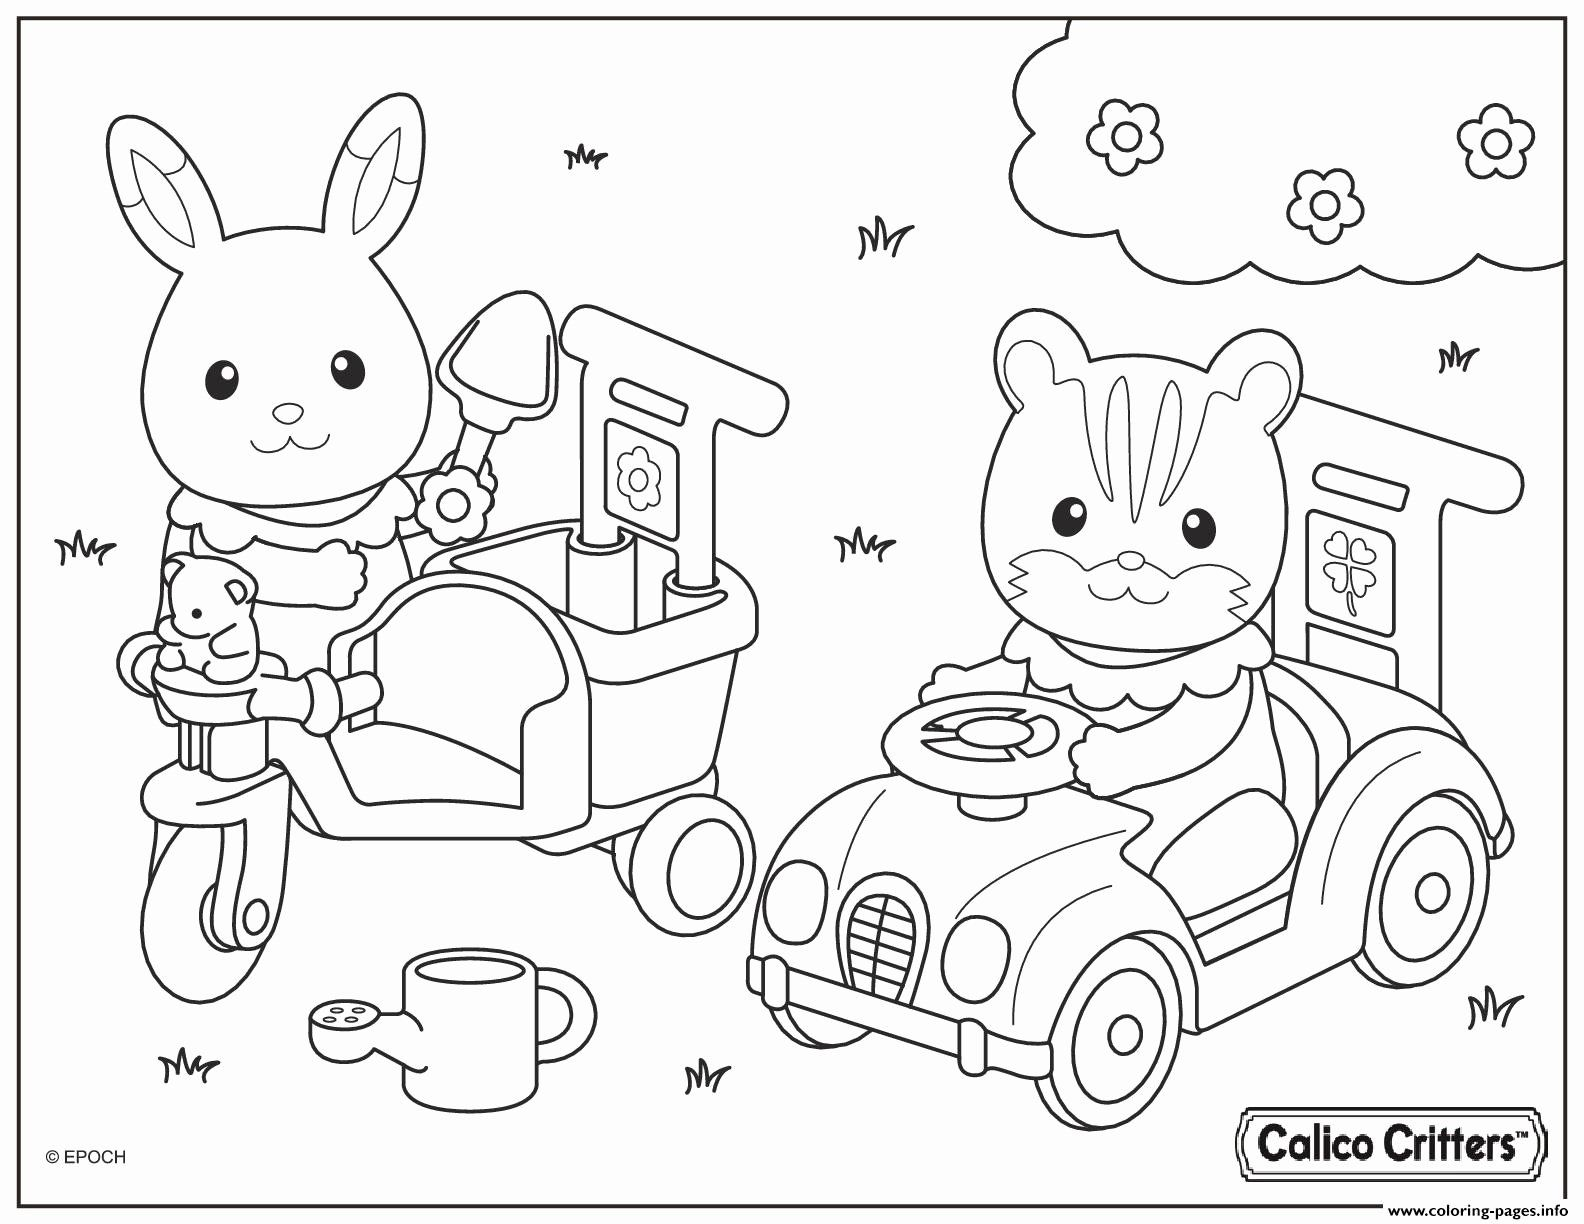 Fun Calico Critter Coloring Activity On Calicocritters Com Family Coloring Pages Coloring Books Animal Coloring Books